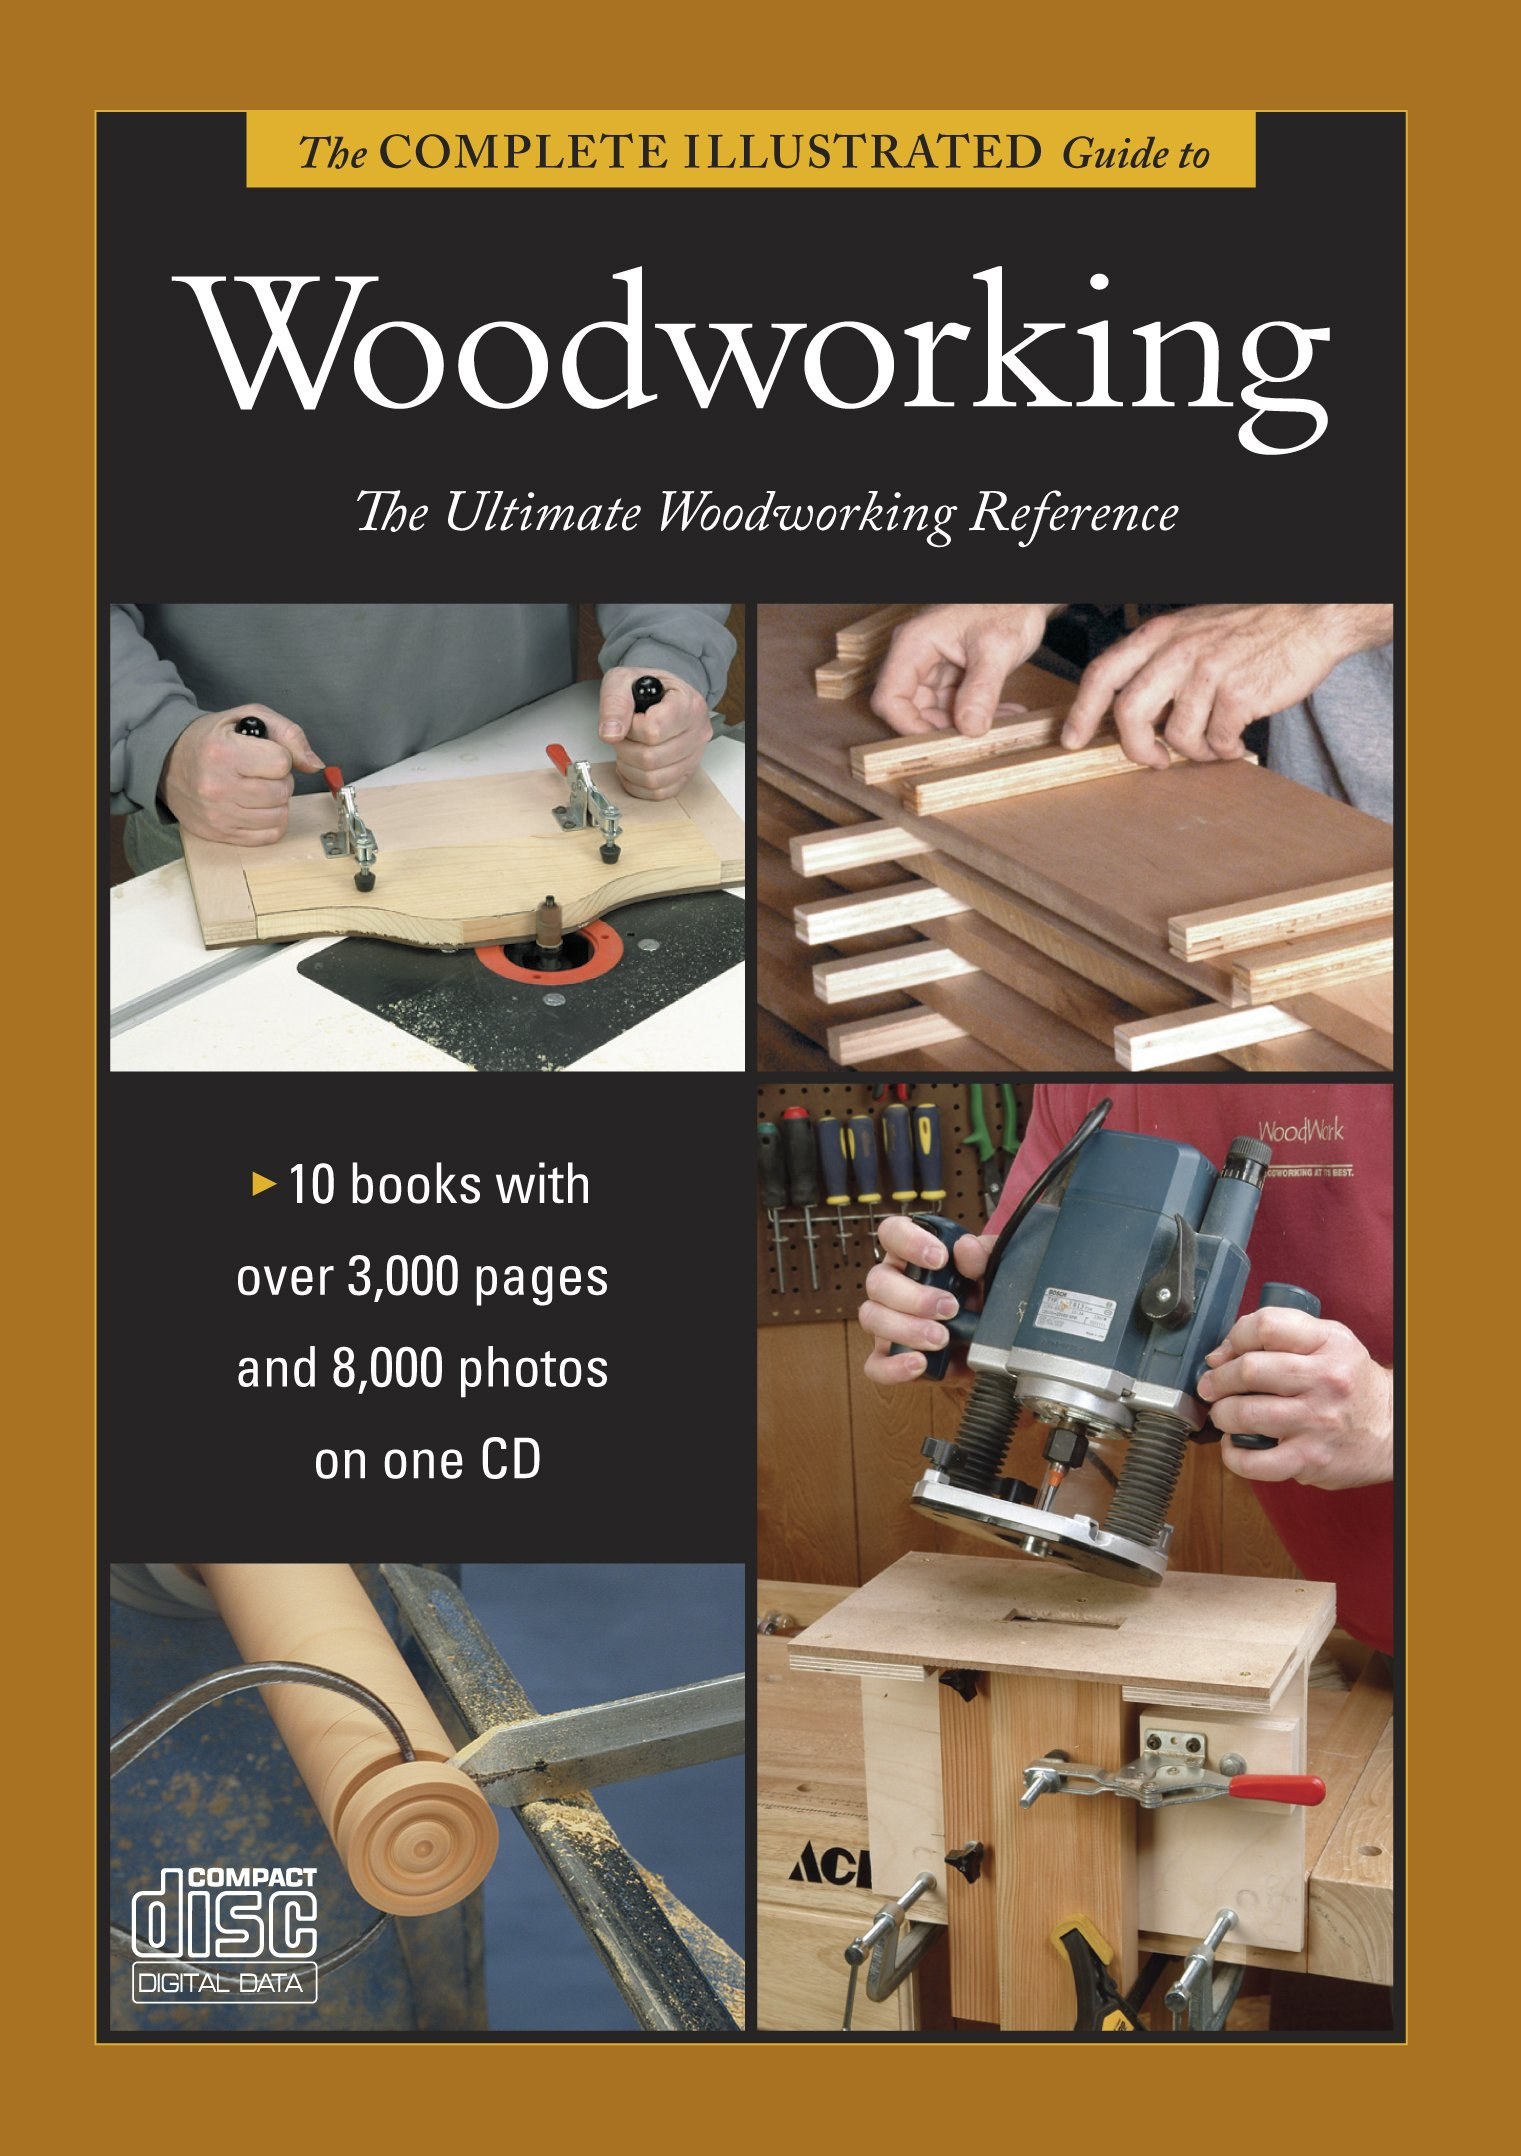 Complete Illustrated Guide to Shaping Wood, Complete Illustrated Guide to Joinery, Complete Illustrated Guide to Furniture: and Cabinet Construction, The (Complete Illustrated Guides)